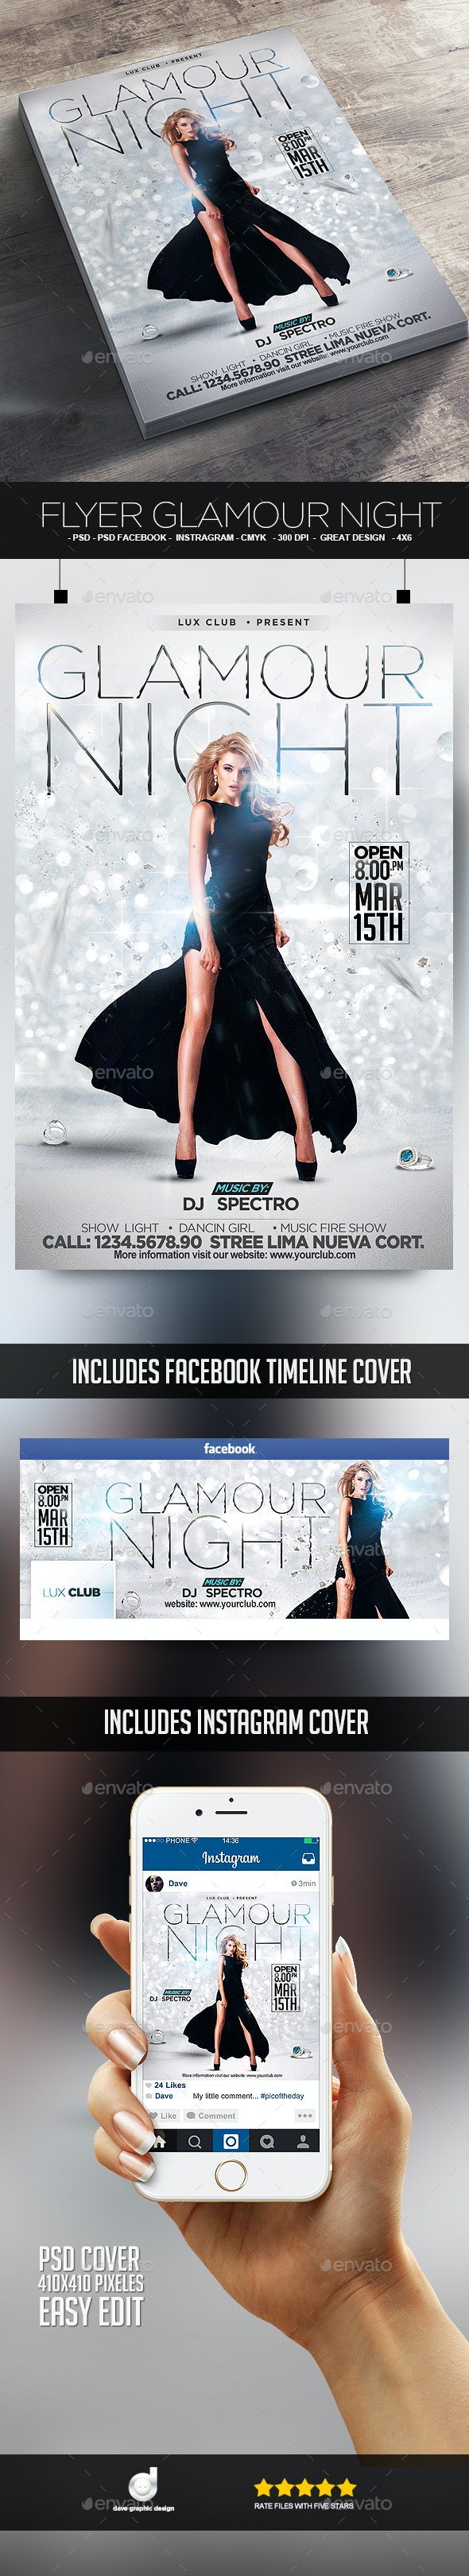 Flyer Glamour Night - Events Flyers